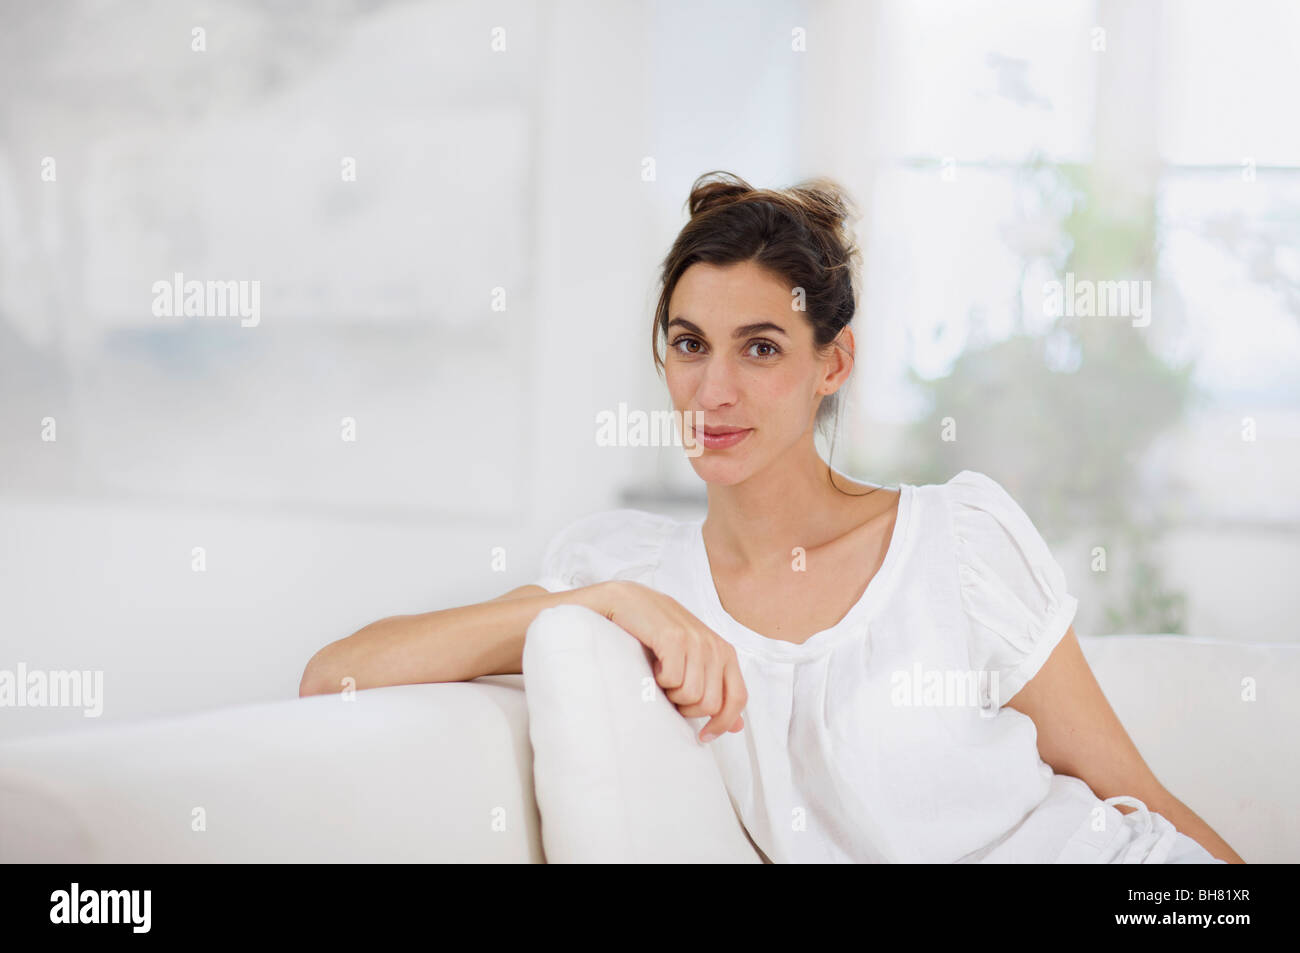 sophisticated woman relaxing Stock Photo